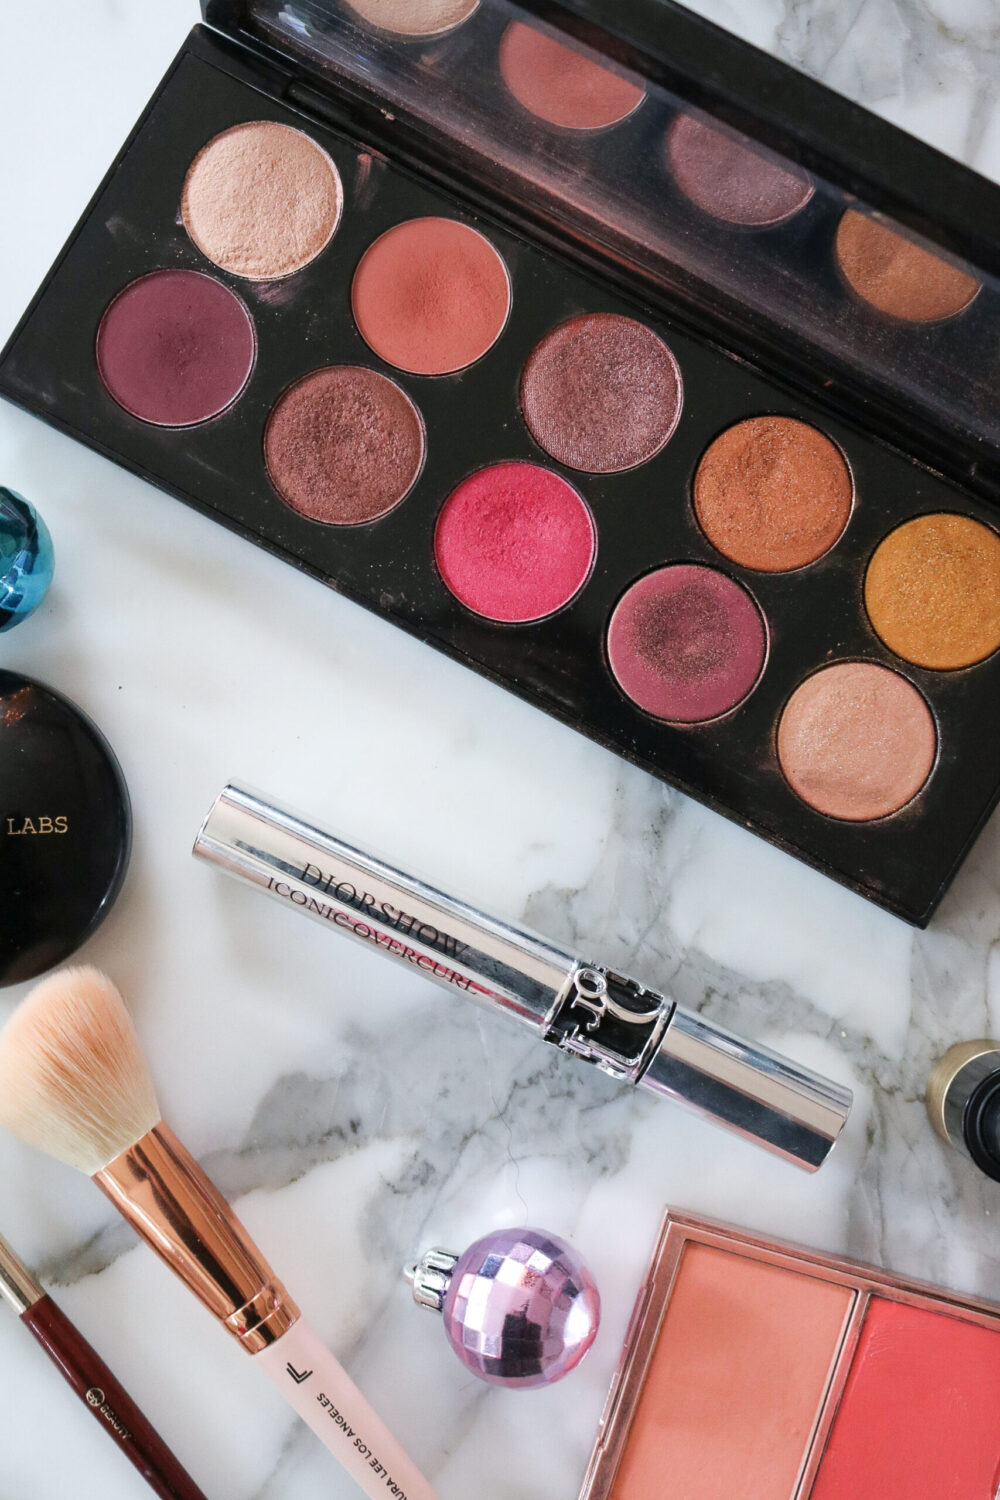 Best 2020 Makeup Releases I DreaminLace.com #makeupaddict #Beautyblog